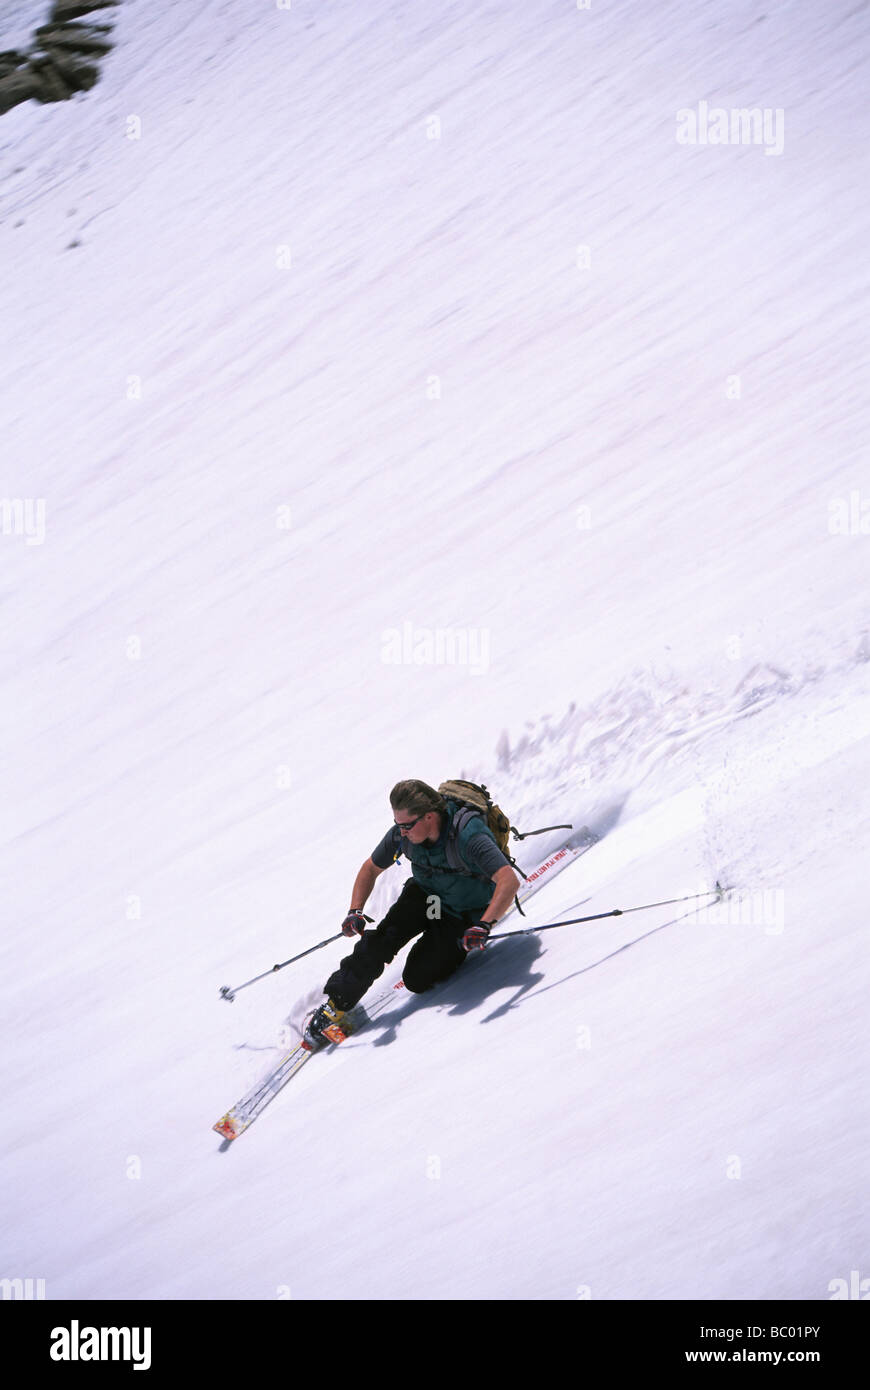 Male telemark skier ripping the spring slopes of Beartooth Pass on Montana on the Wyoming border near Yellowstone - Stock Image